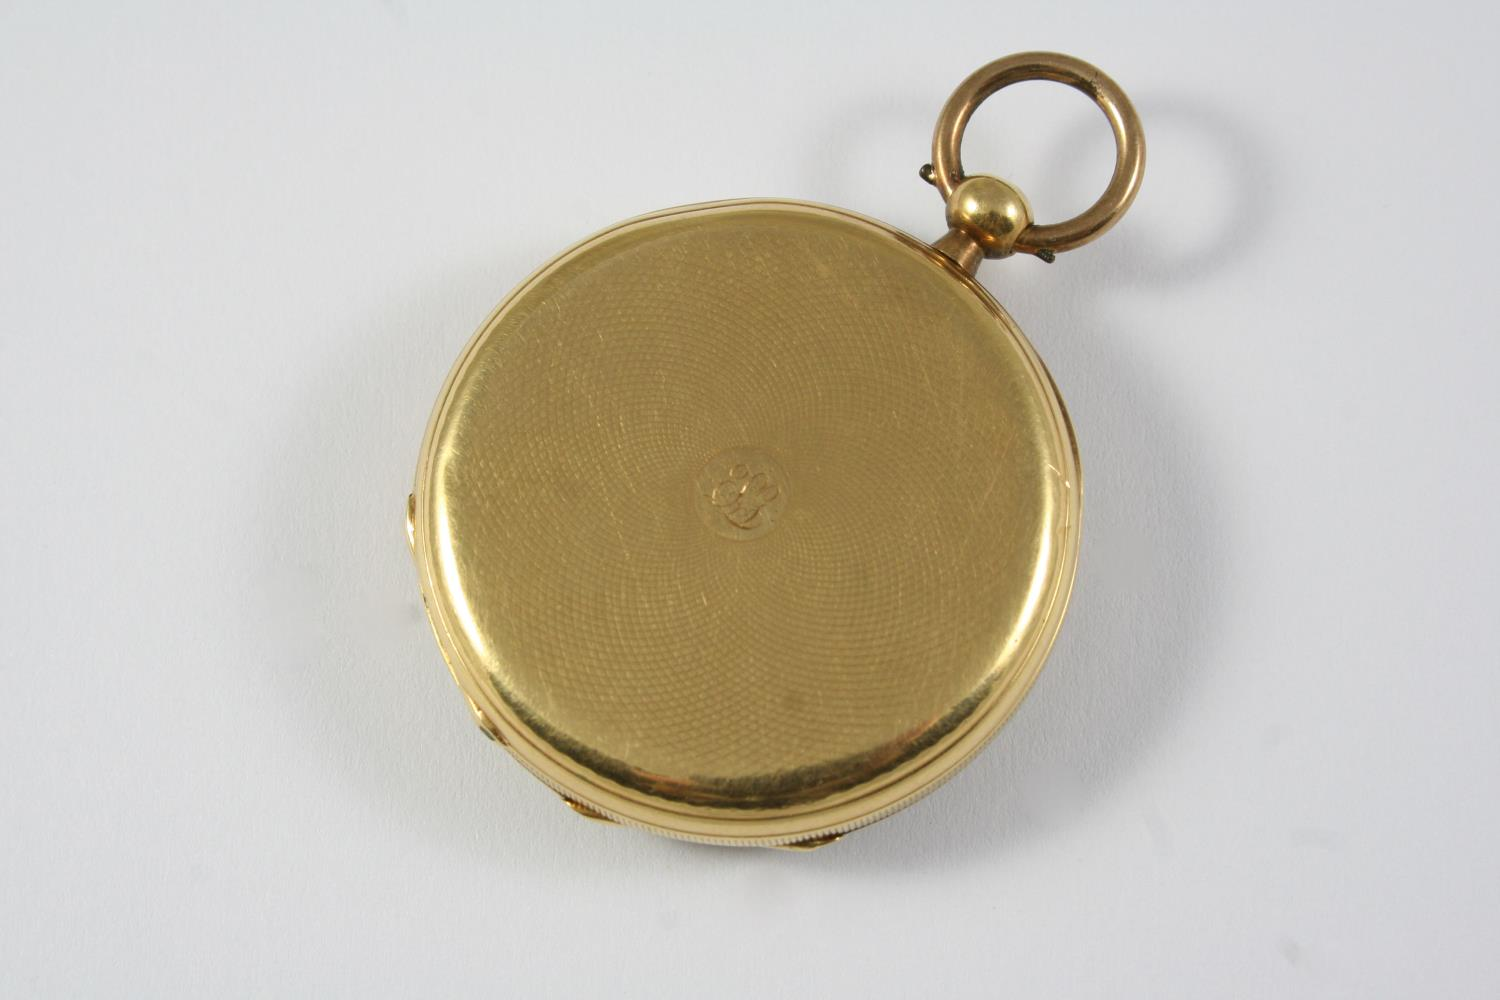 A GOLD OPEN FACED POCKET WATCH the gold foliate engraved dial with Roman numerals, engraved to the - Image 3 of 4